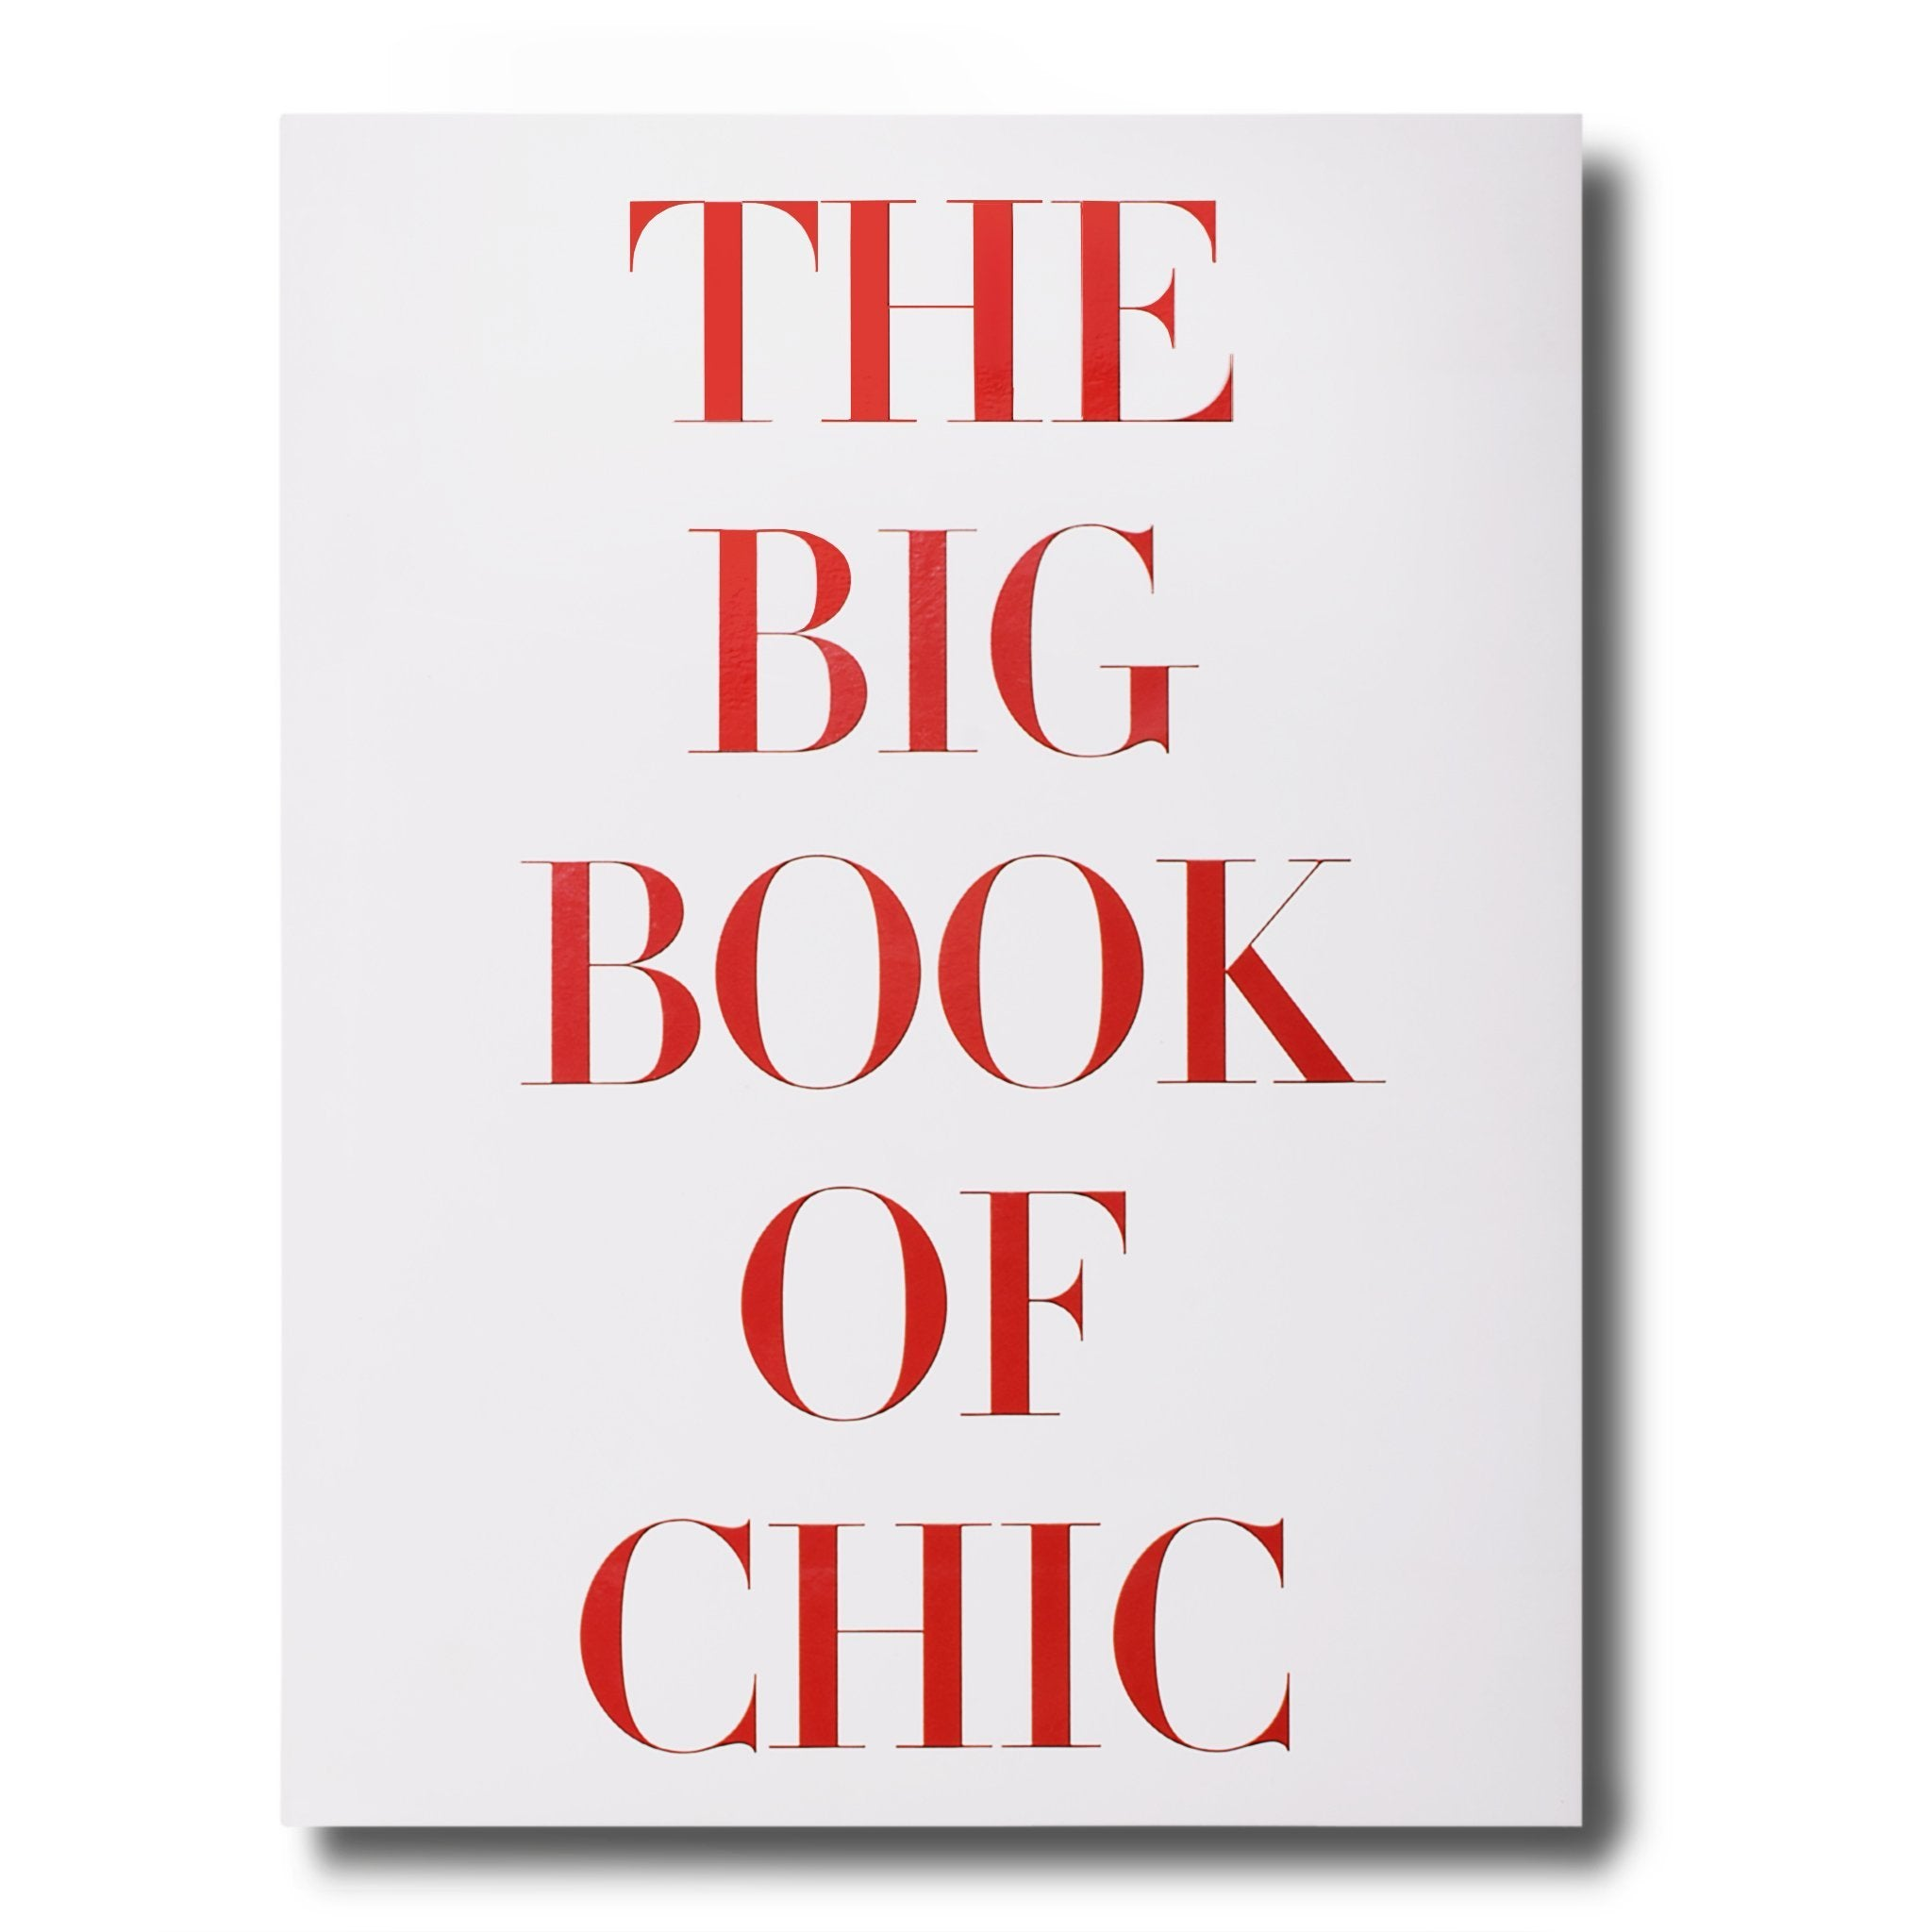 Big Chic Book of